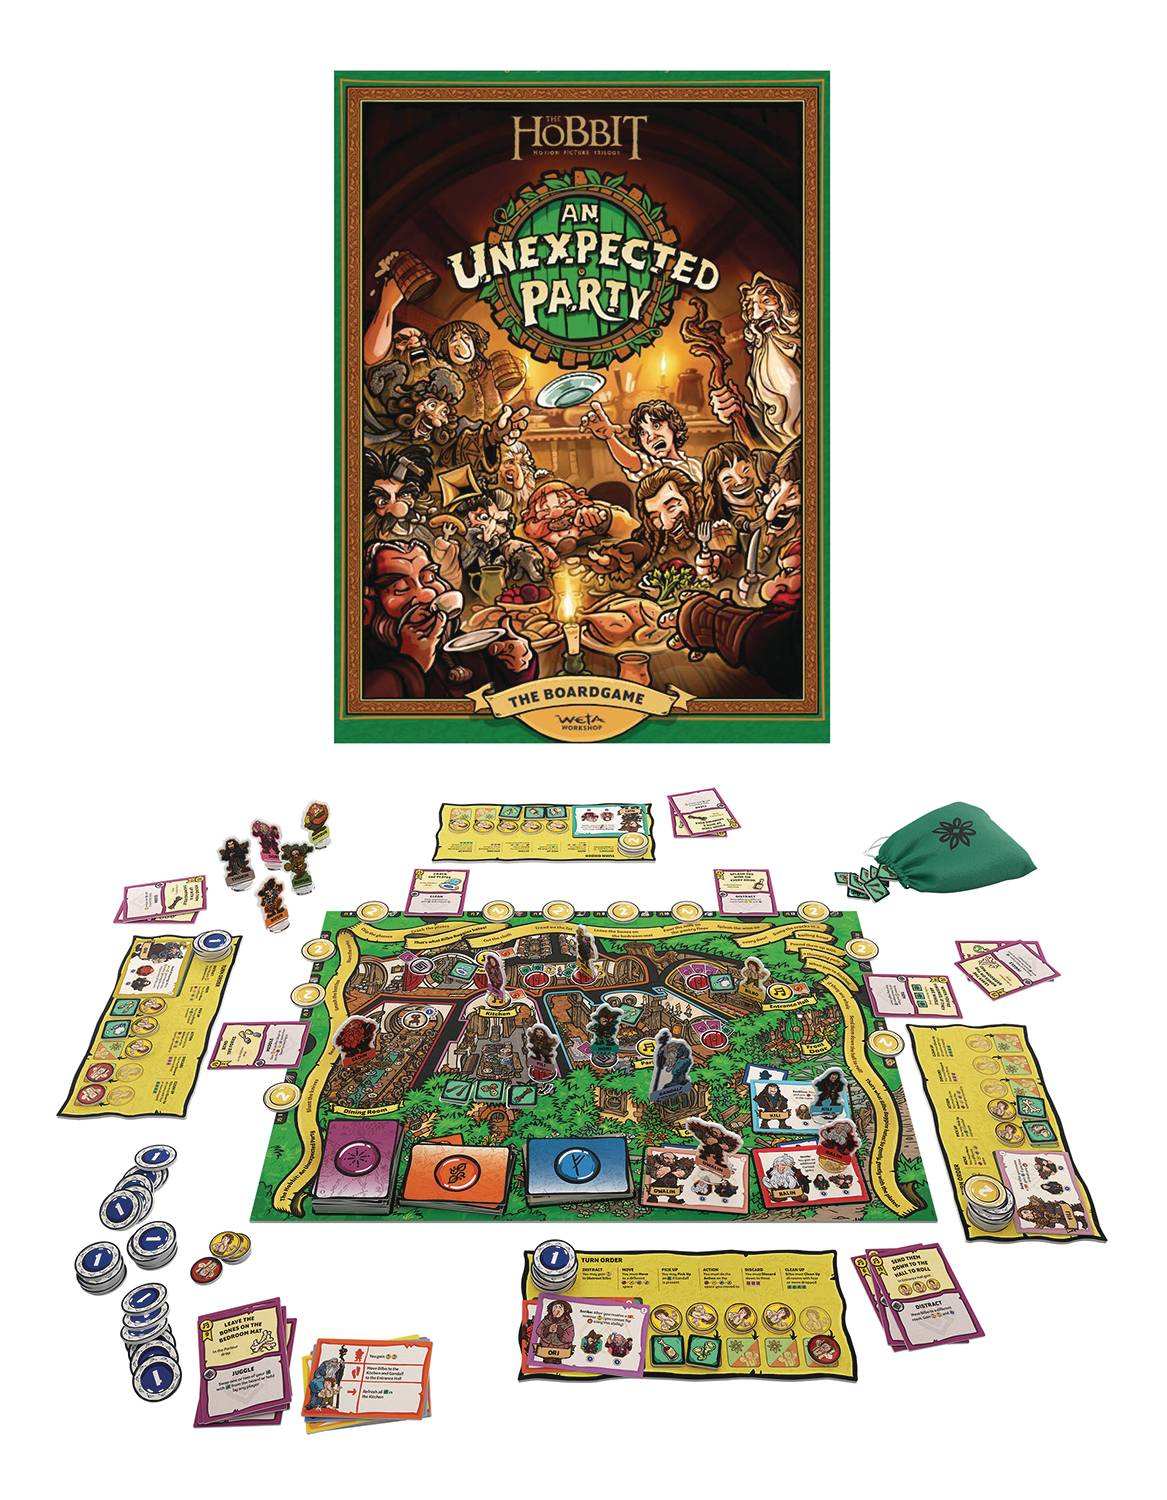 THE HOBBIT AN UNEXPECTED PARTY BOARDGAME